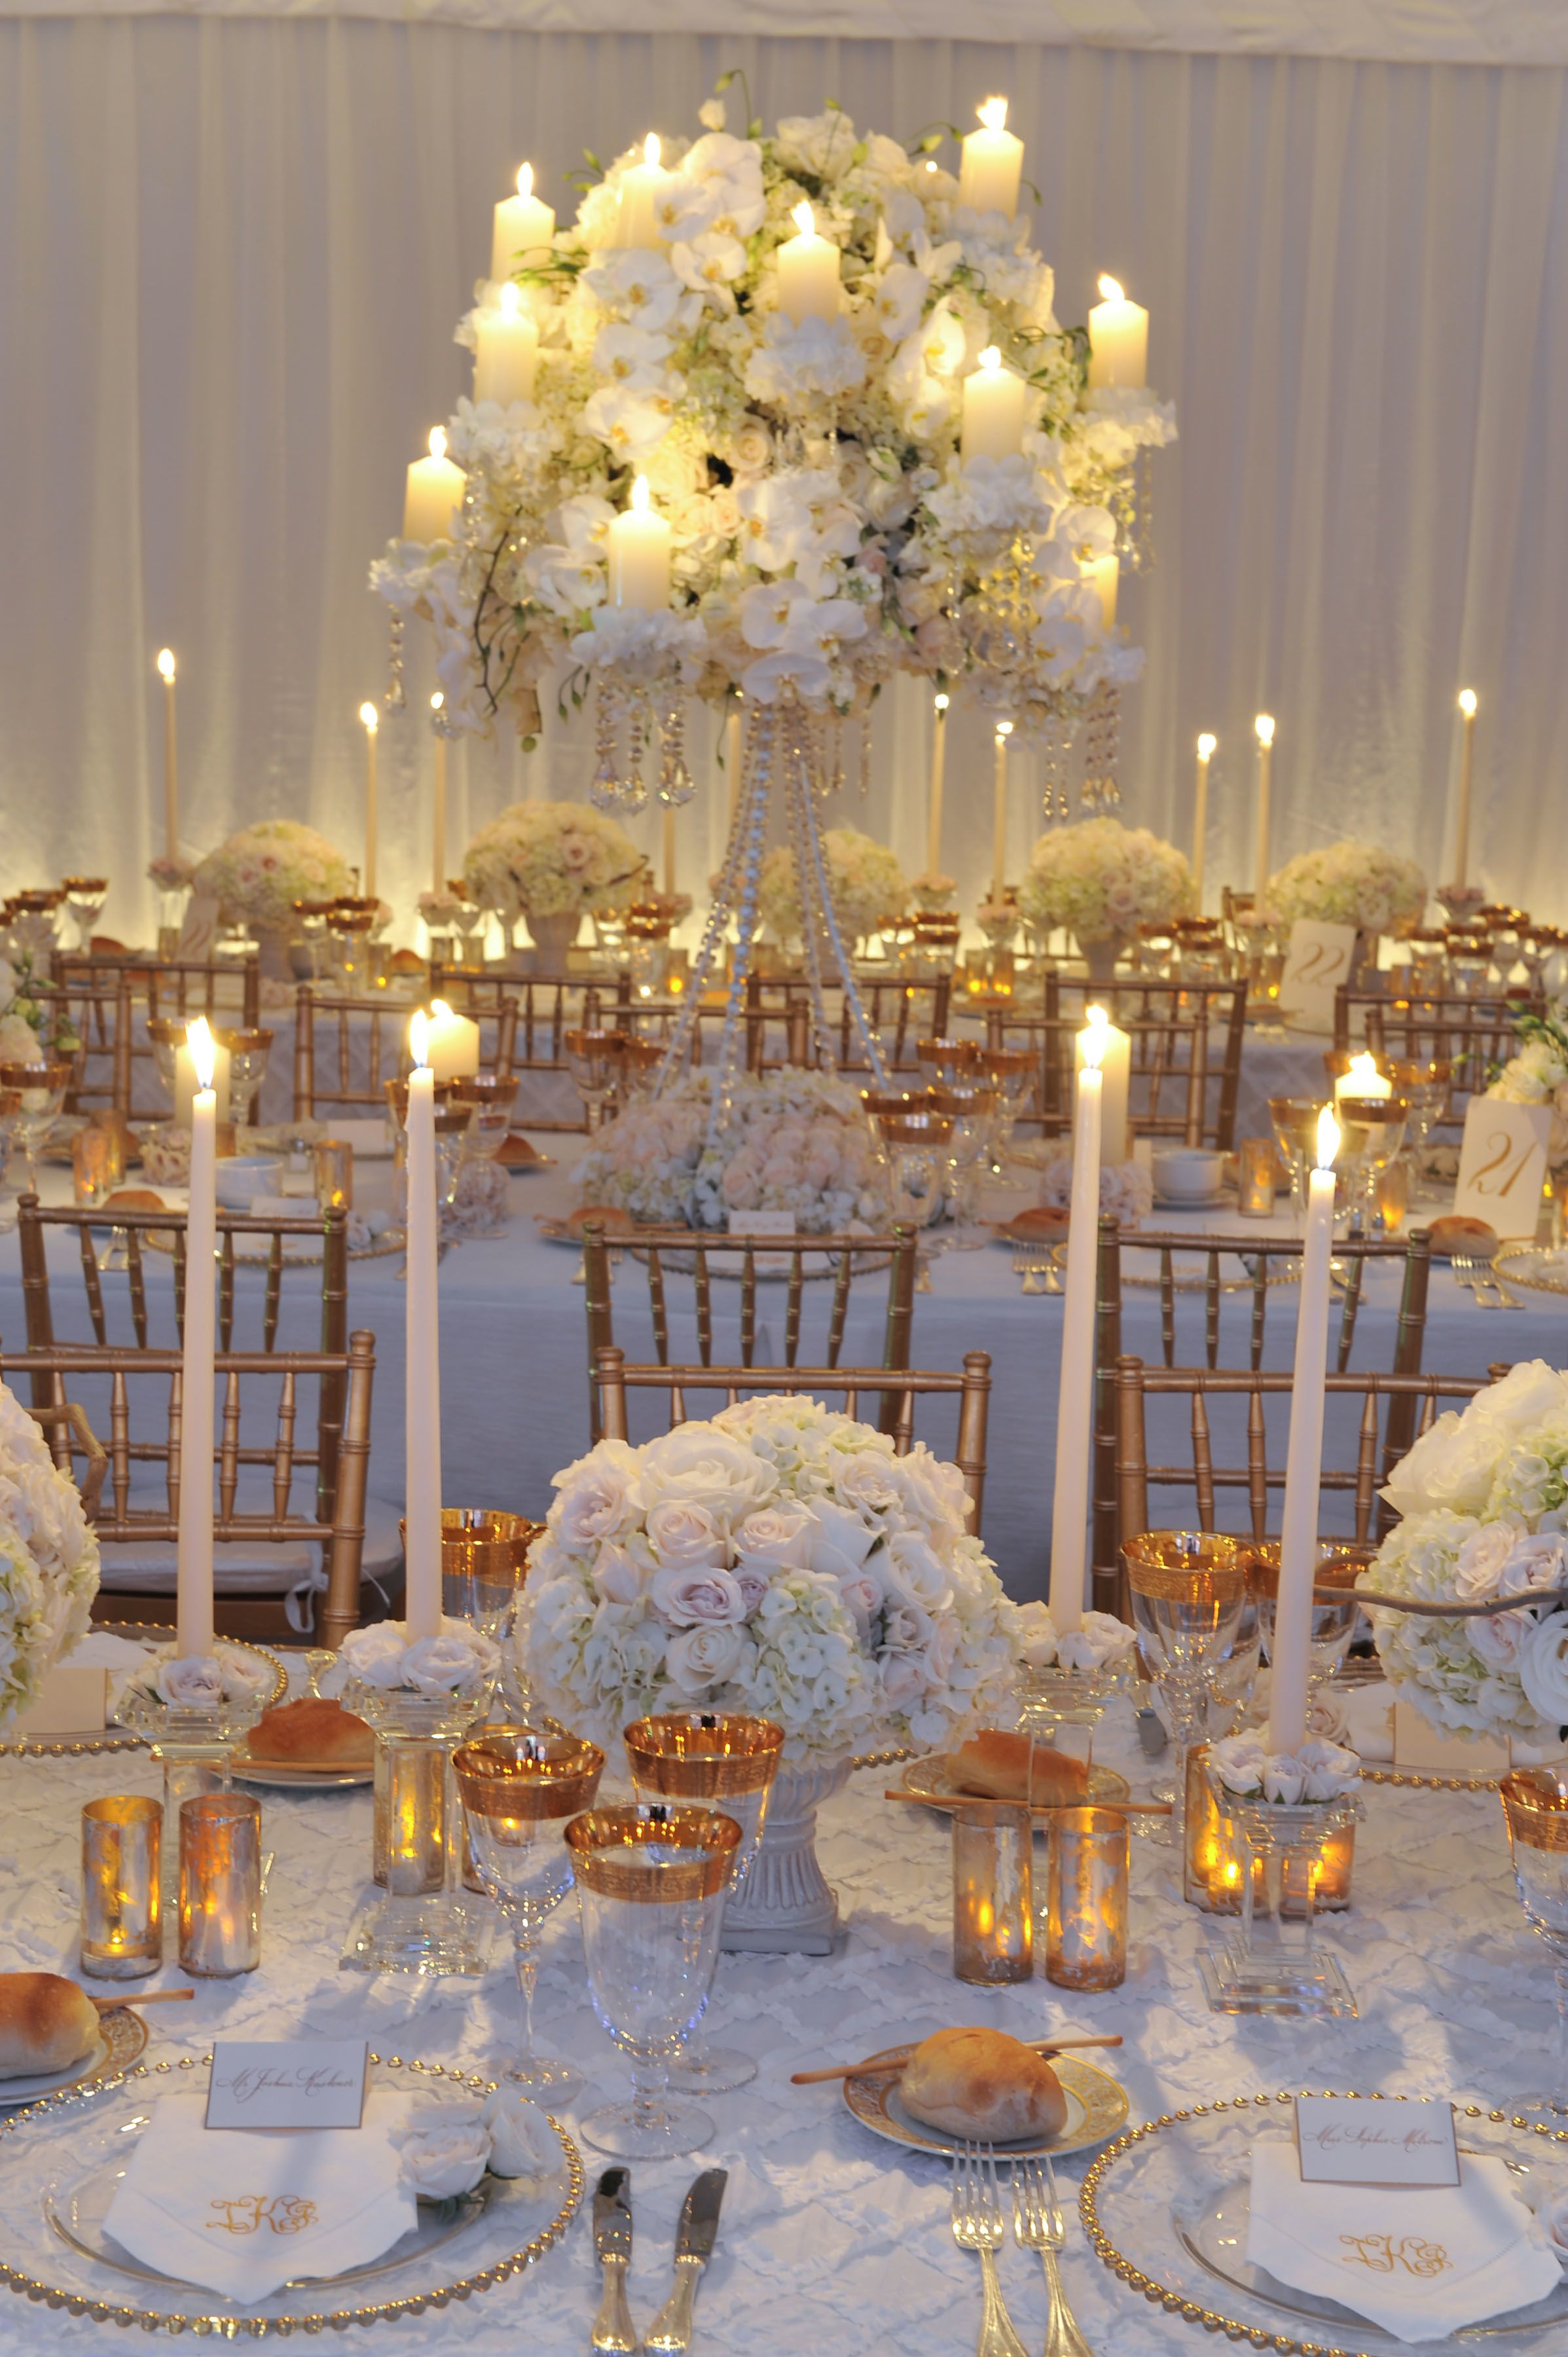 White wedding with candlelight Keywords: #weddings #